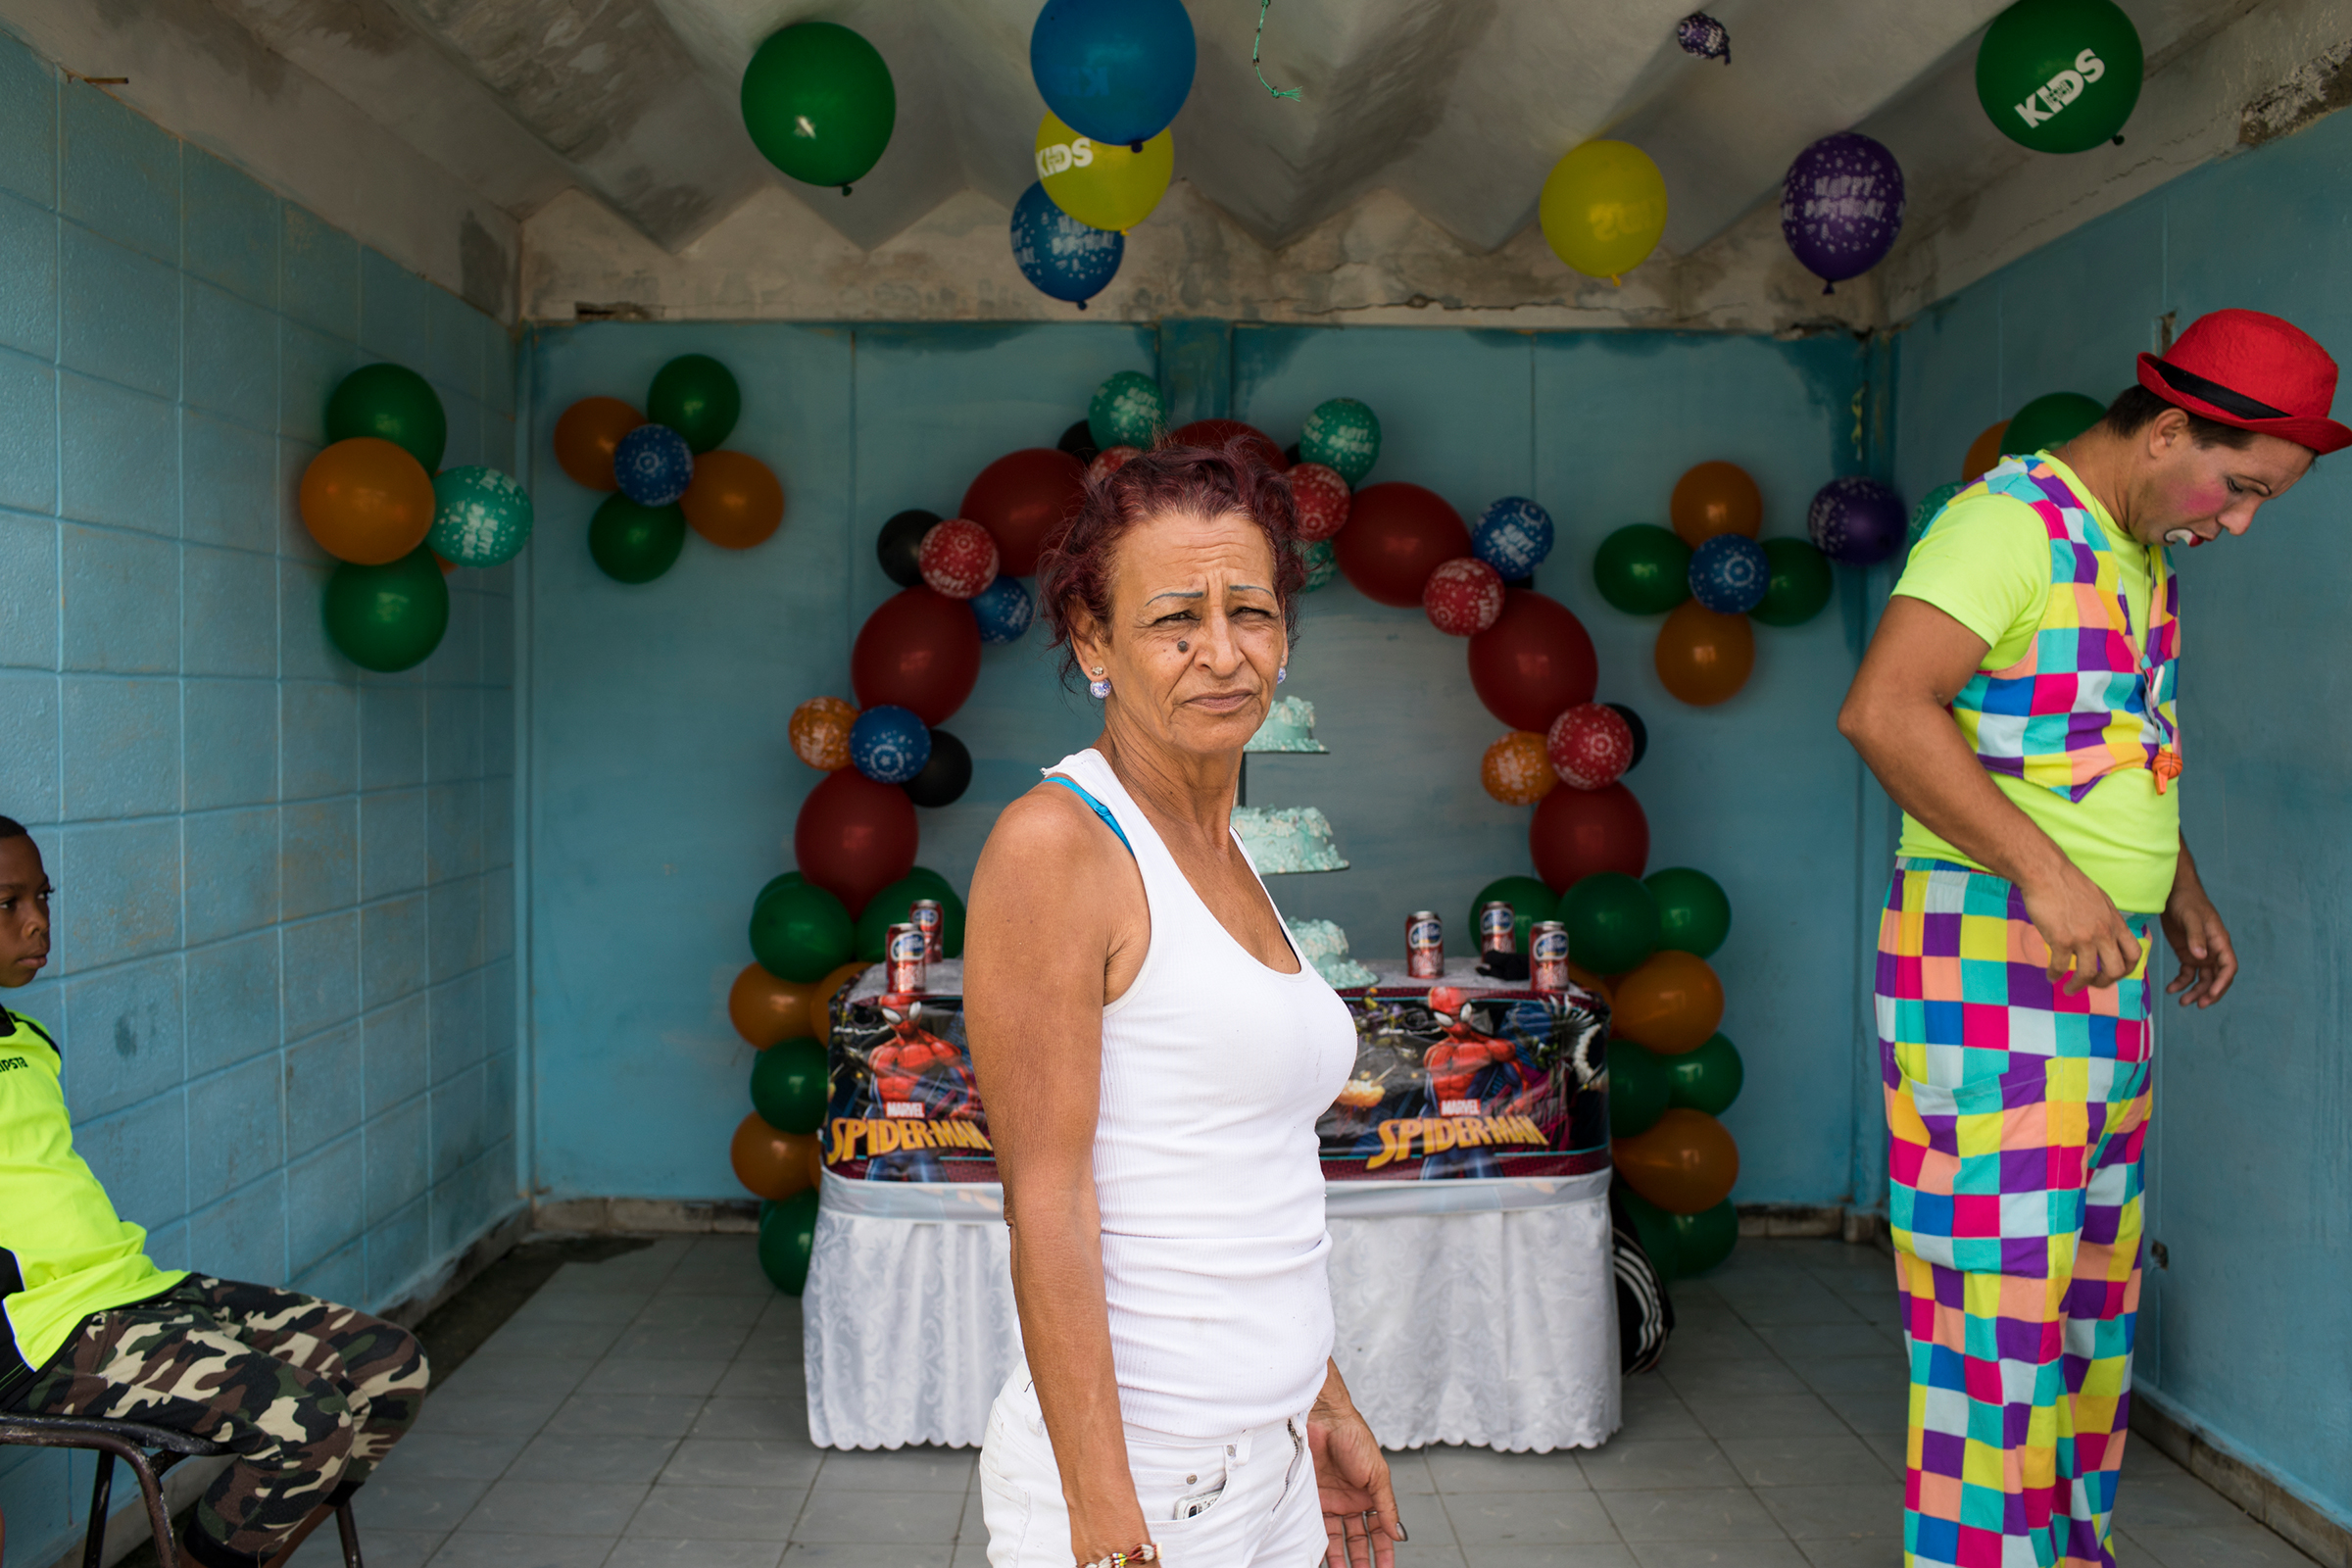 Marta celebrates her grandson's birthday in Cuba on May 27, 2018. She is able to return frequently and enjoys being able to bring small comforts to her family. Her main motivation for migrating to the U.S. was to be able to provide for her kids and grandson. When she returns to Las Yaguas, her block in Havana, everyone knows her. She still feels at home.